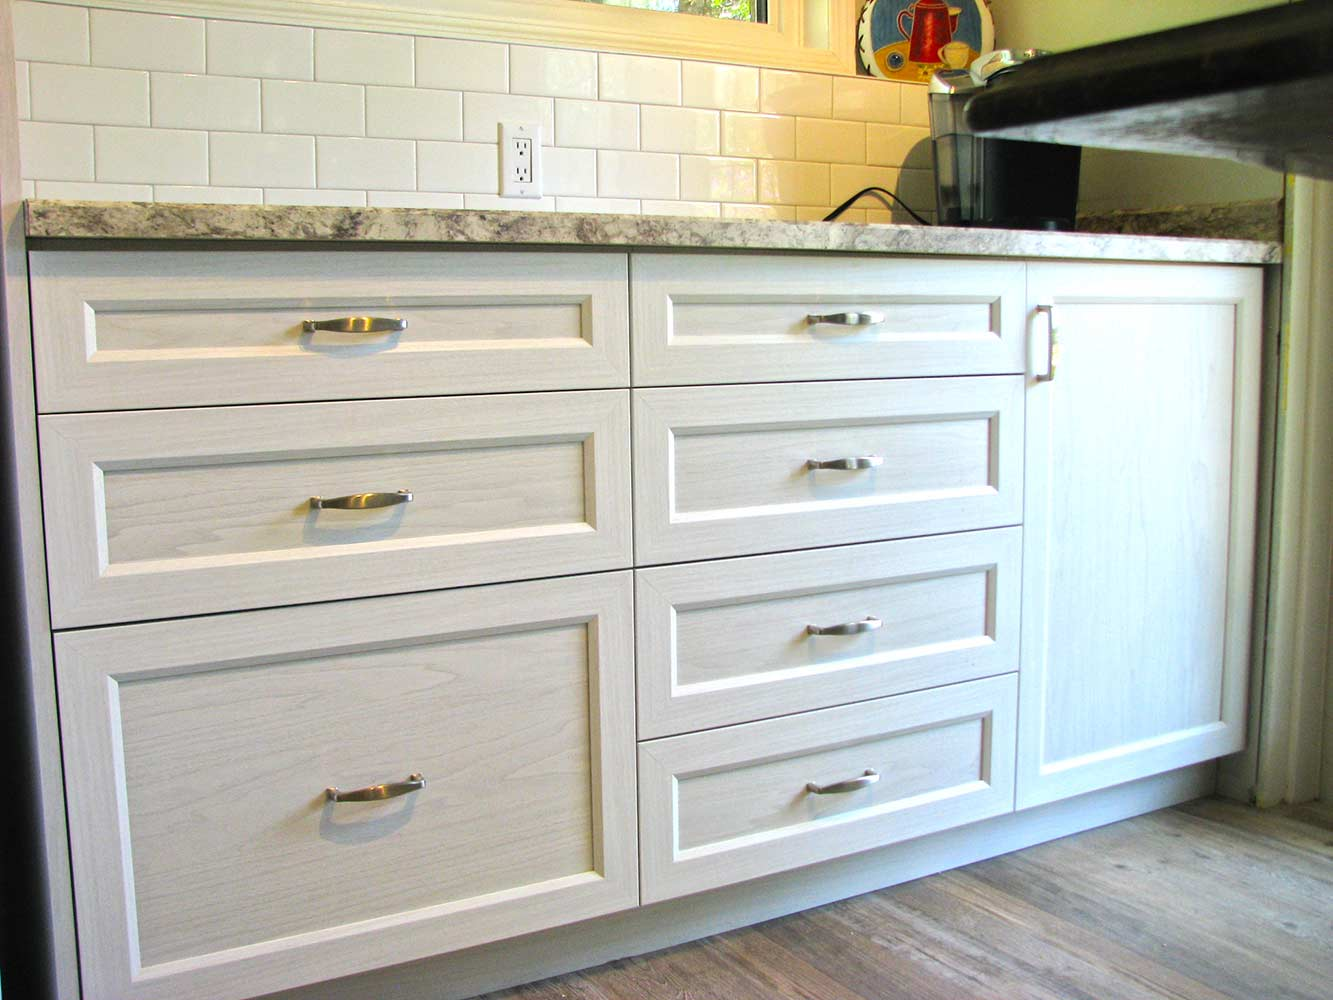 Thermofoil Cabinets - Hanover Cabinets